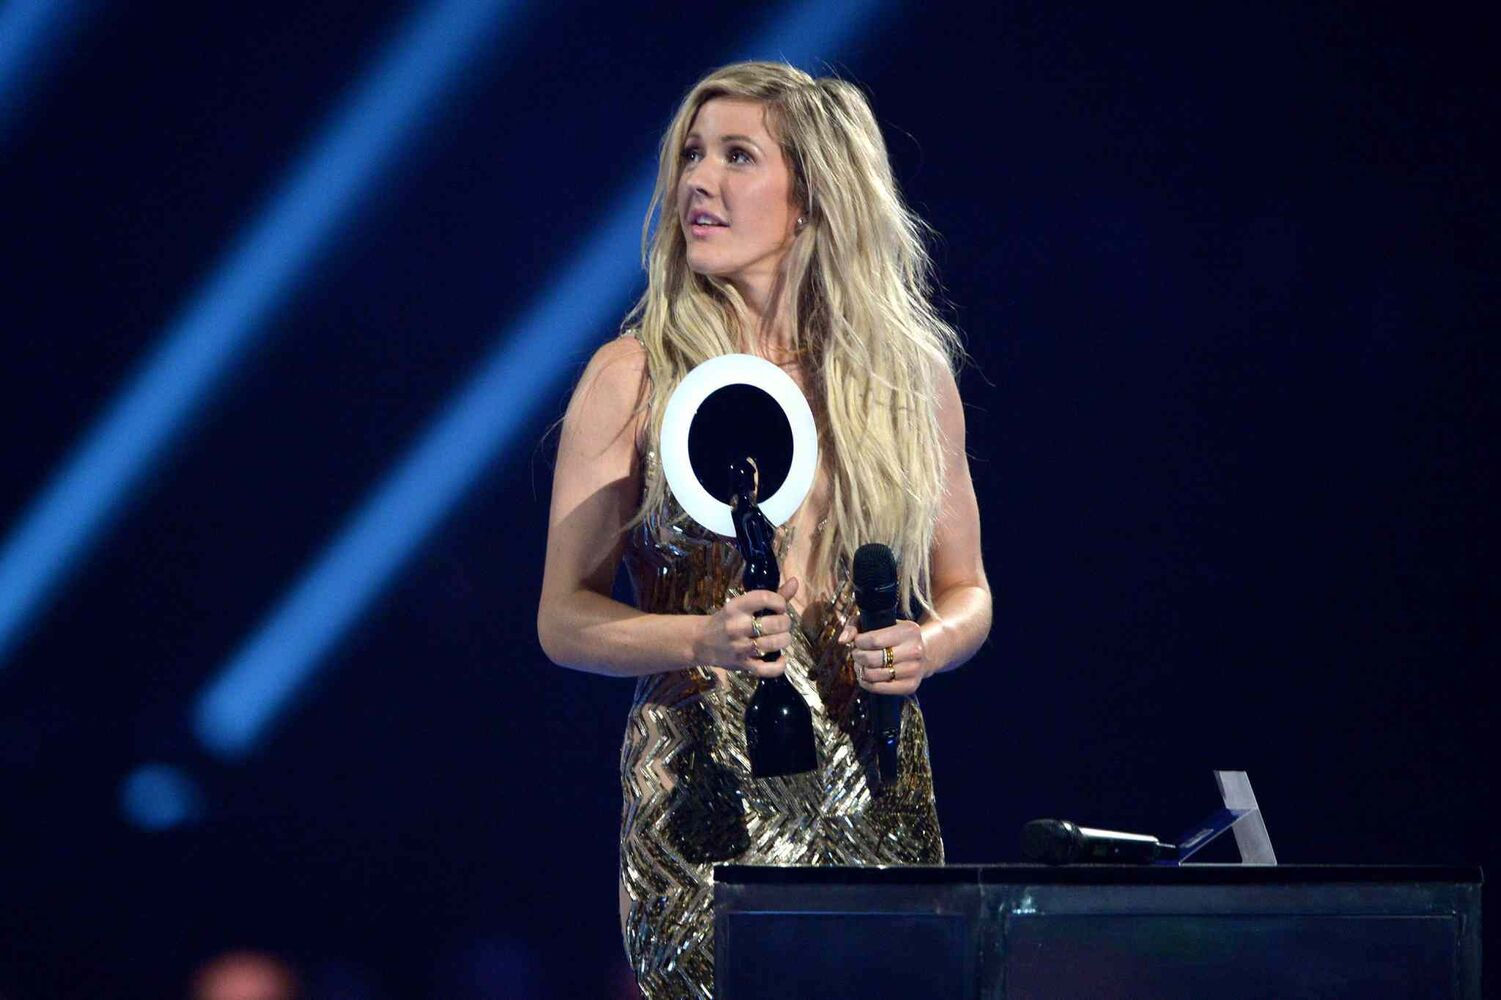 Singer Ellie Goulding accepts the award for best British Female Solo Artist onstage at the BRIT Awards 2014 at the O2 Arena in London on Wednesday, Feb. 19, 2014.